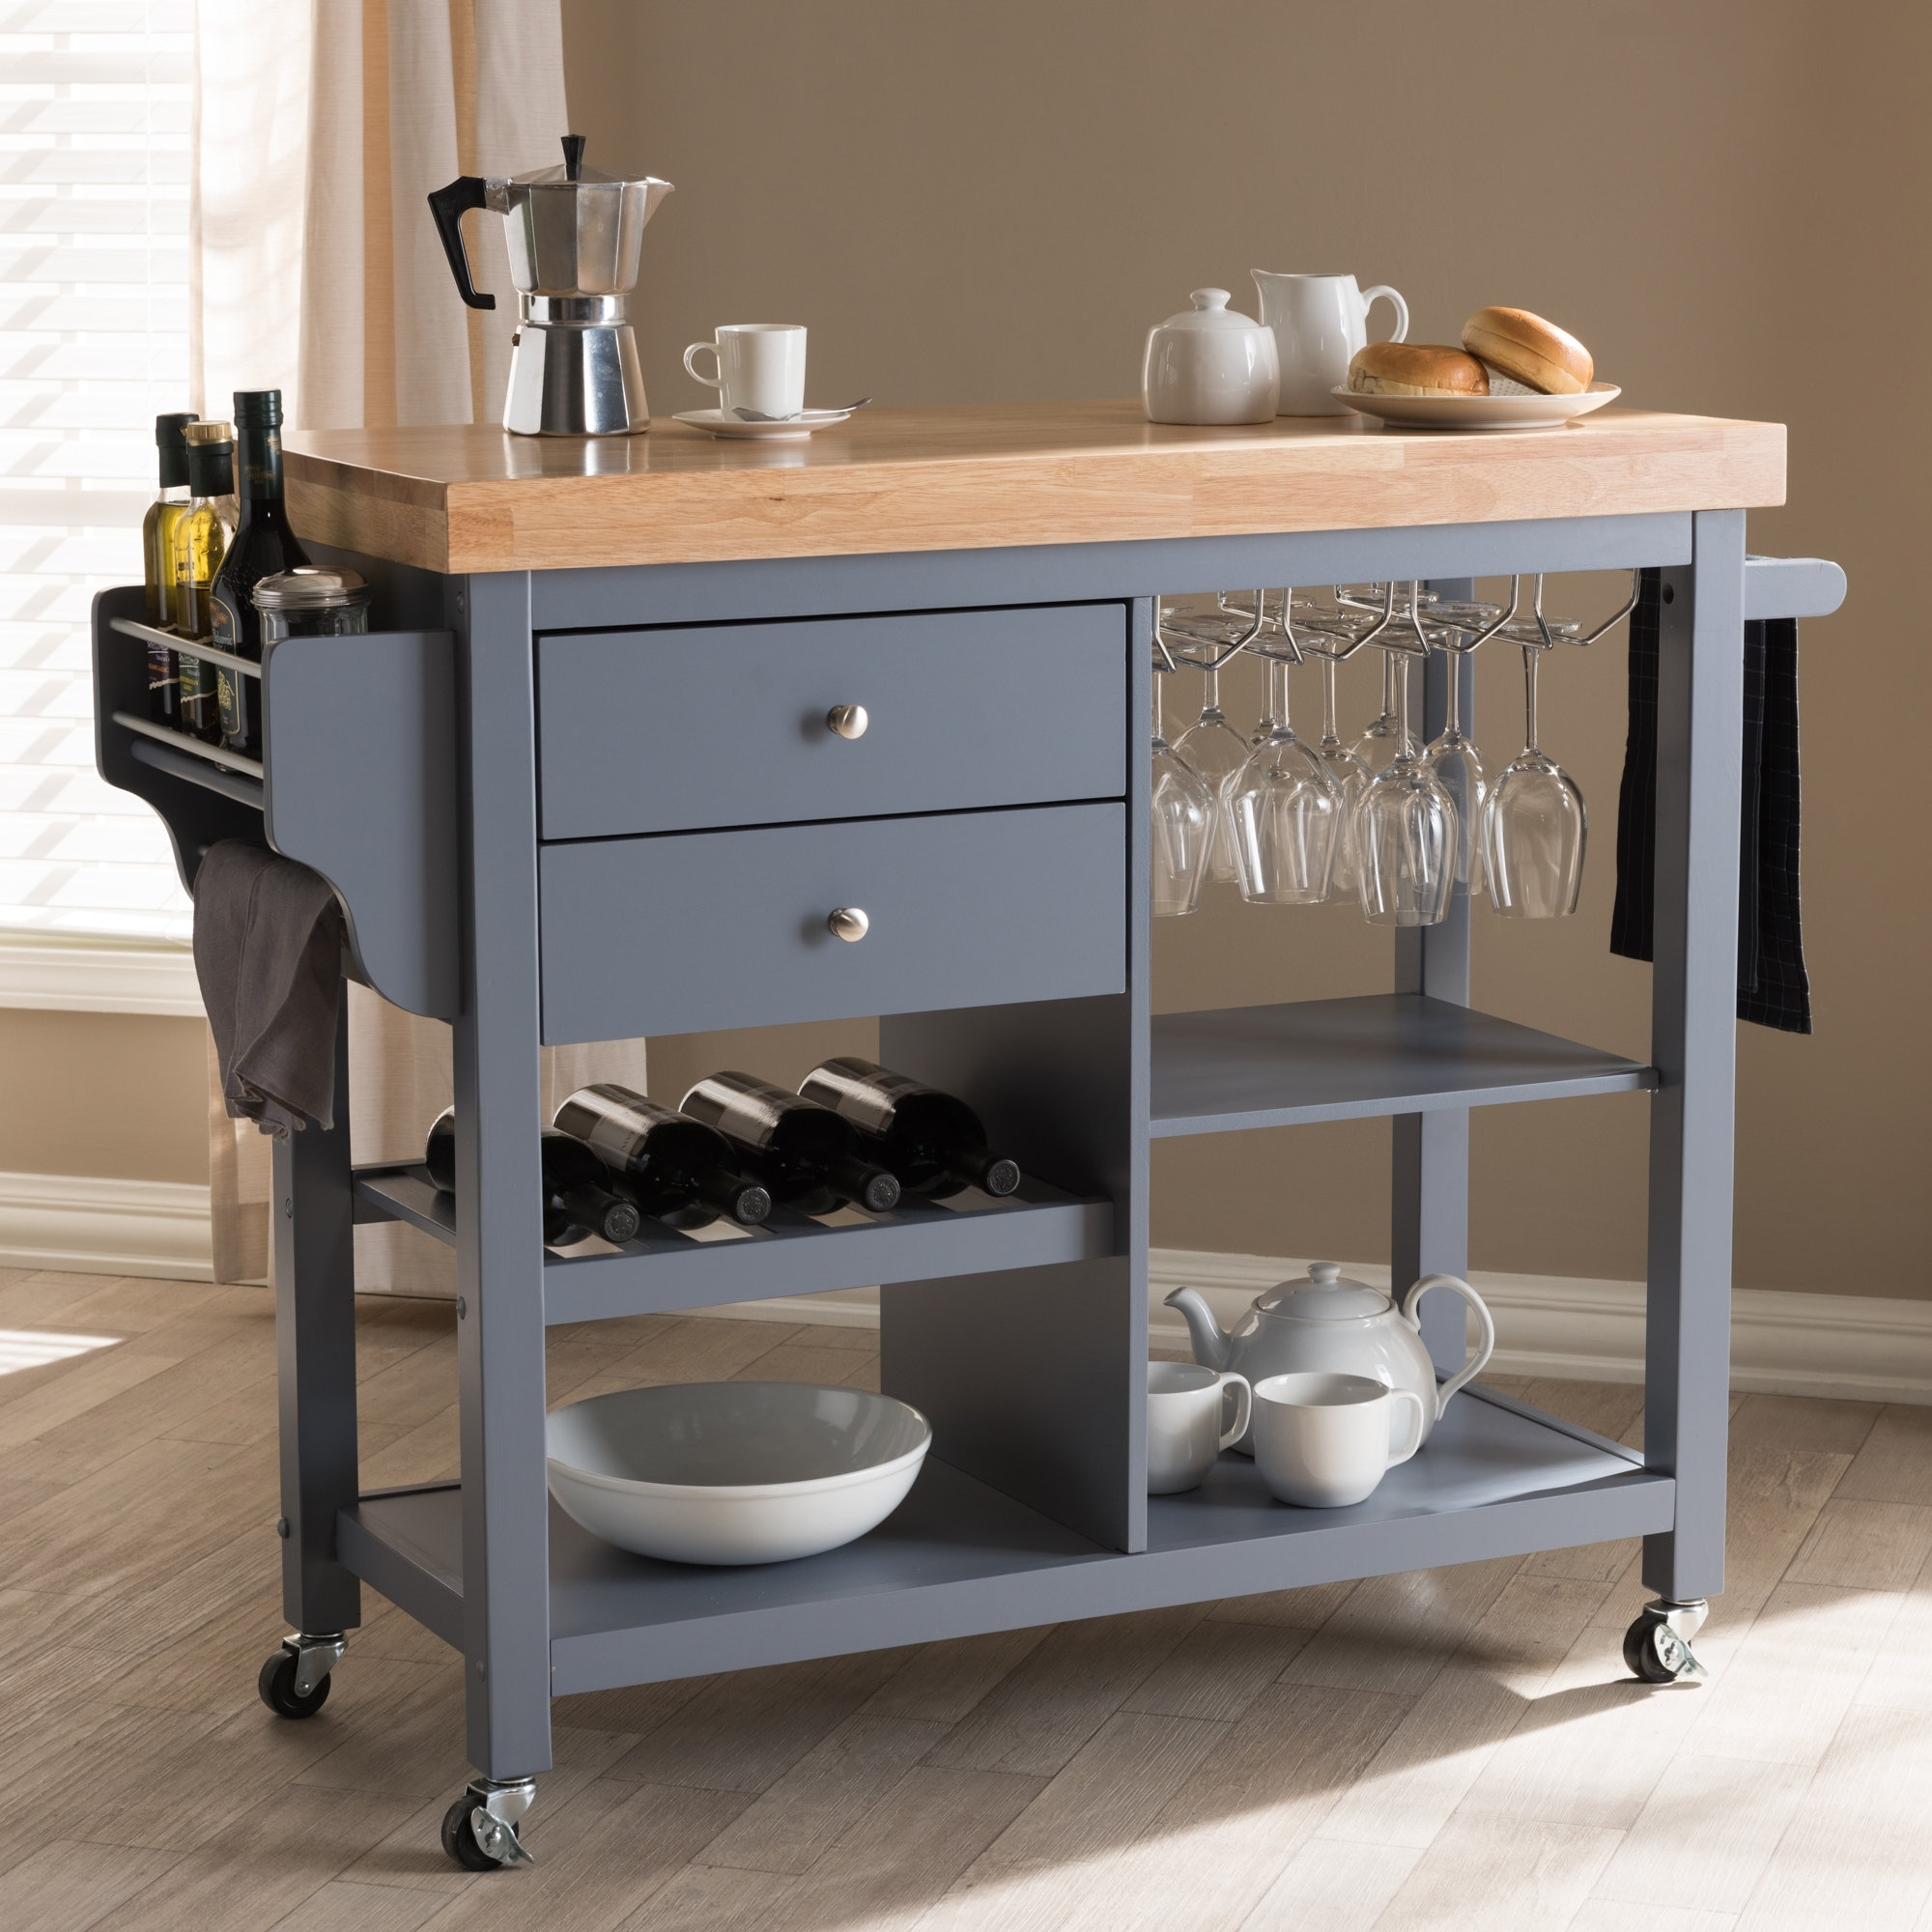 Charlton Home Hoglund Kitchen Cart With Wood Top | Wayfair With Regard To 2018 Helms Sideboards (View 12 of 20)